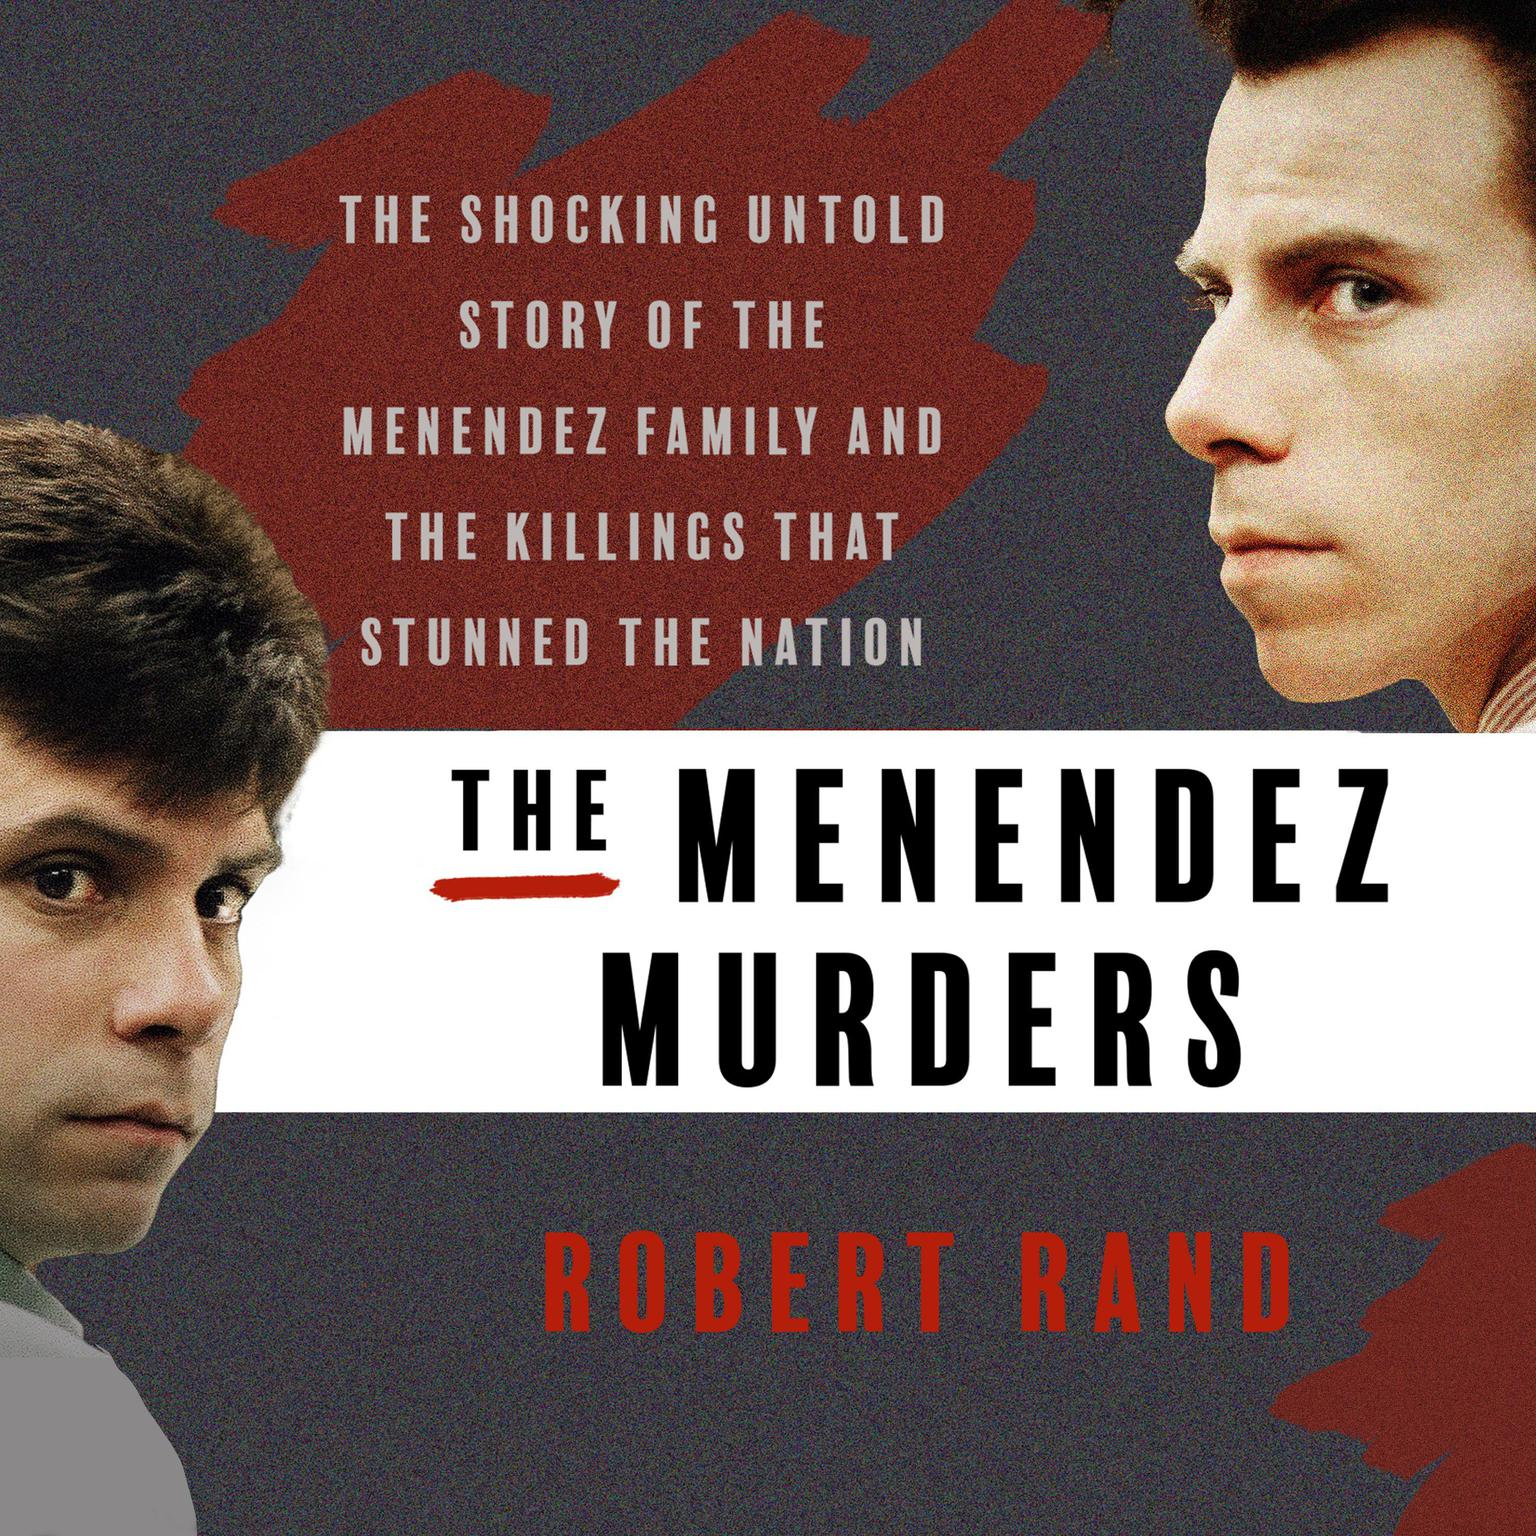 Printable The Menendez Murders: The Shocking Untold Story of the Menendez Family and the Killings that Stunned the Nation Audiobook Cover Art